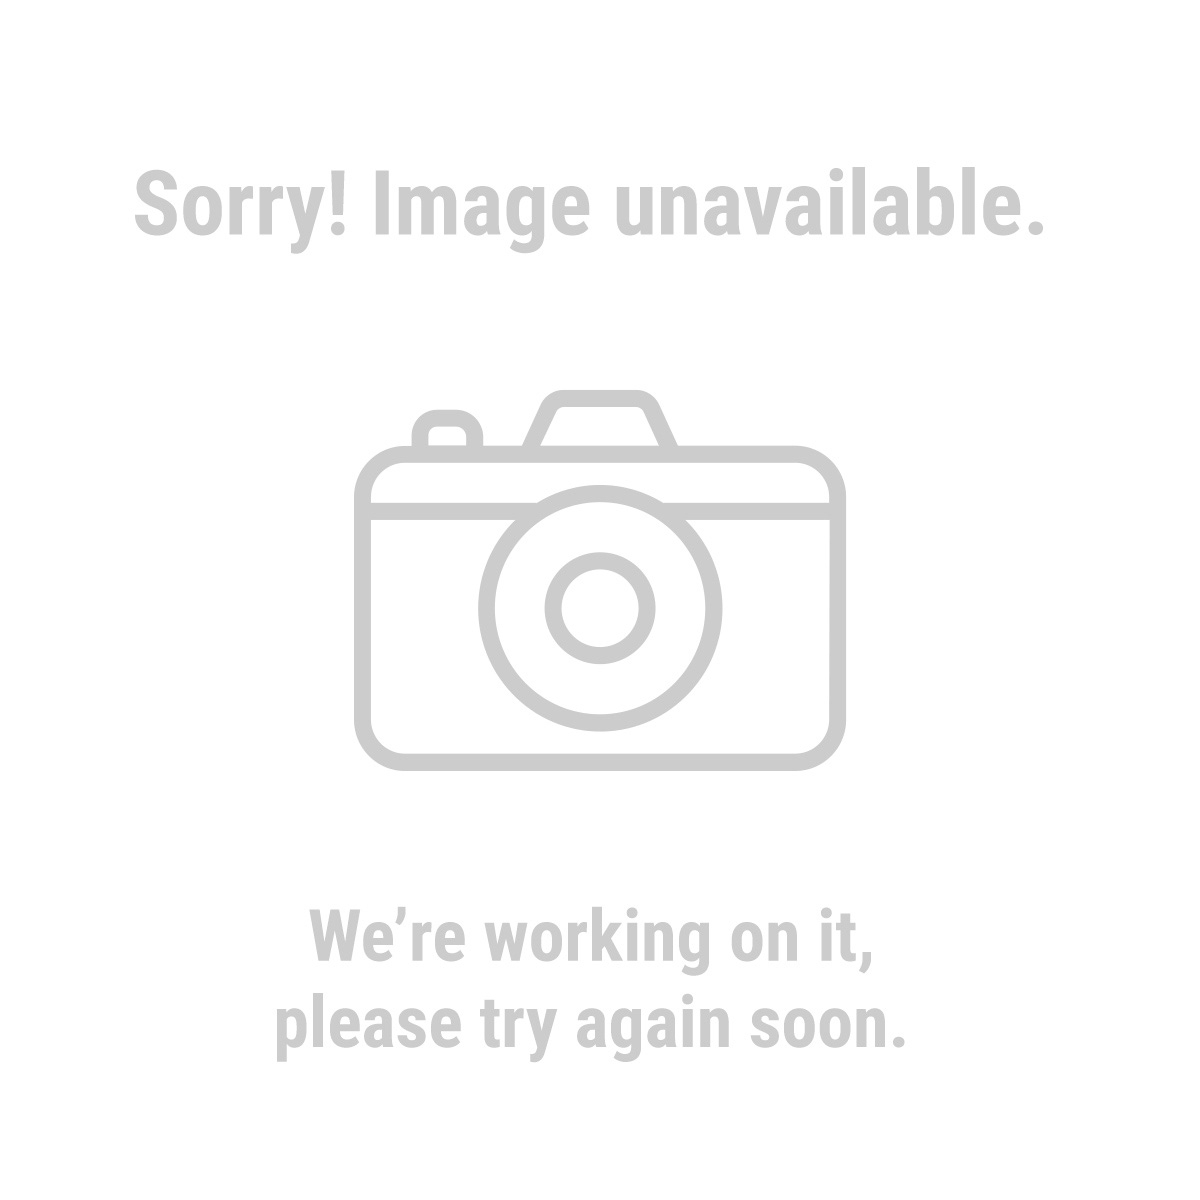 Storehouse® 92567 4 Bin Storage Container